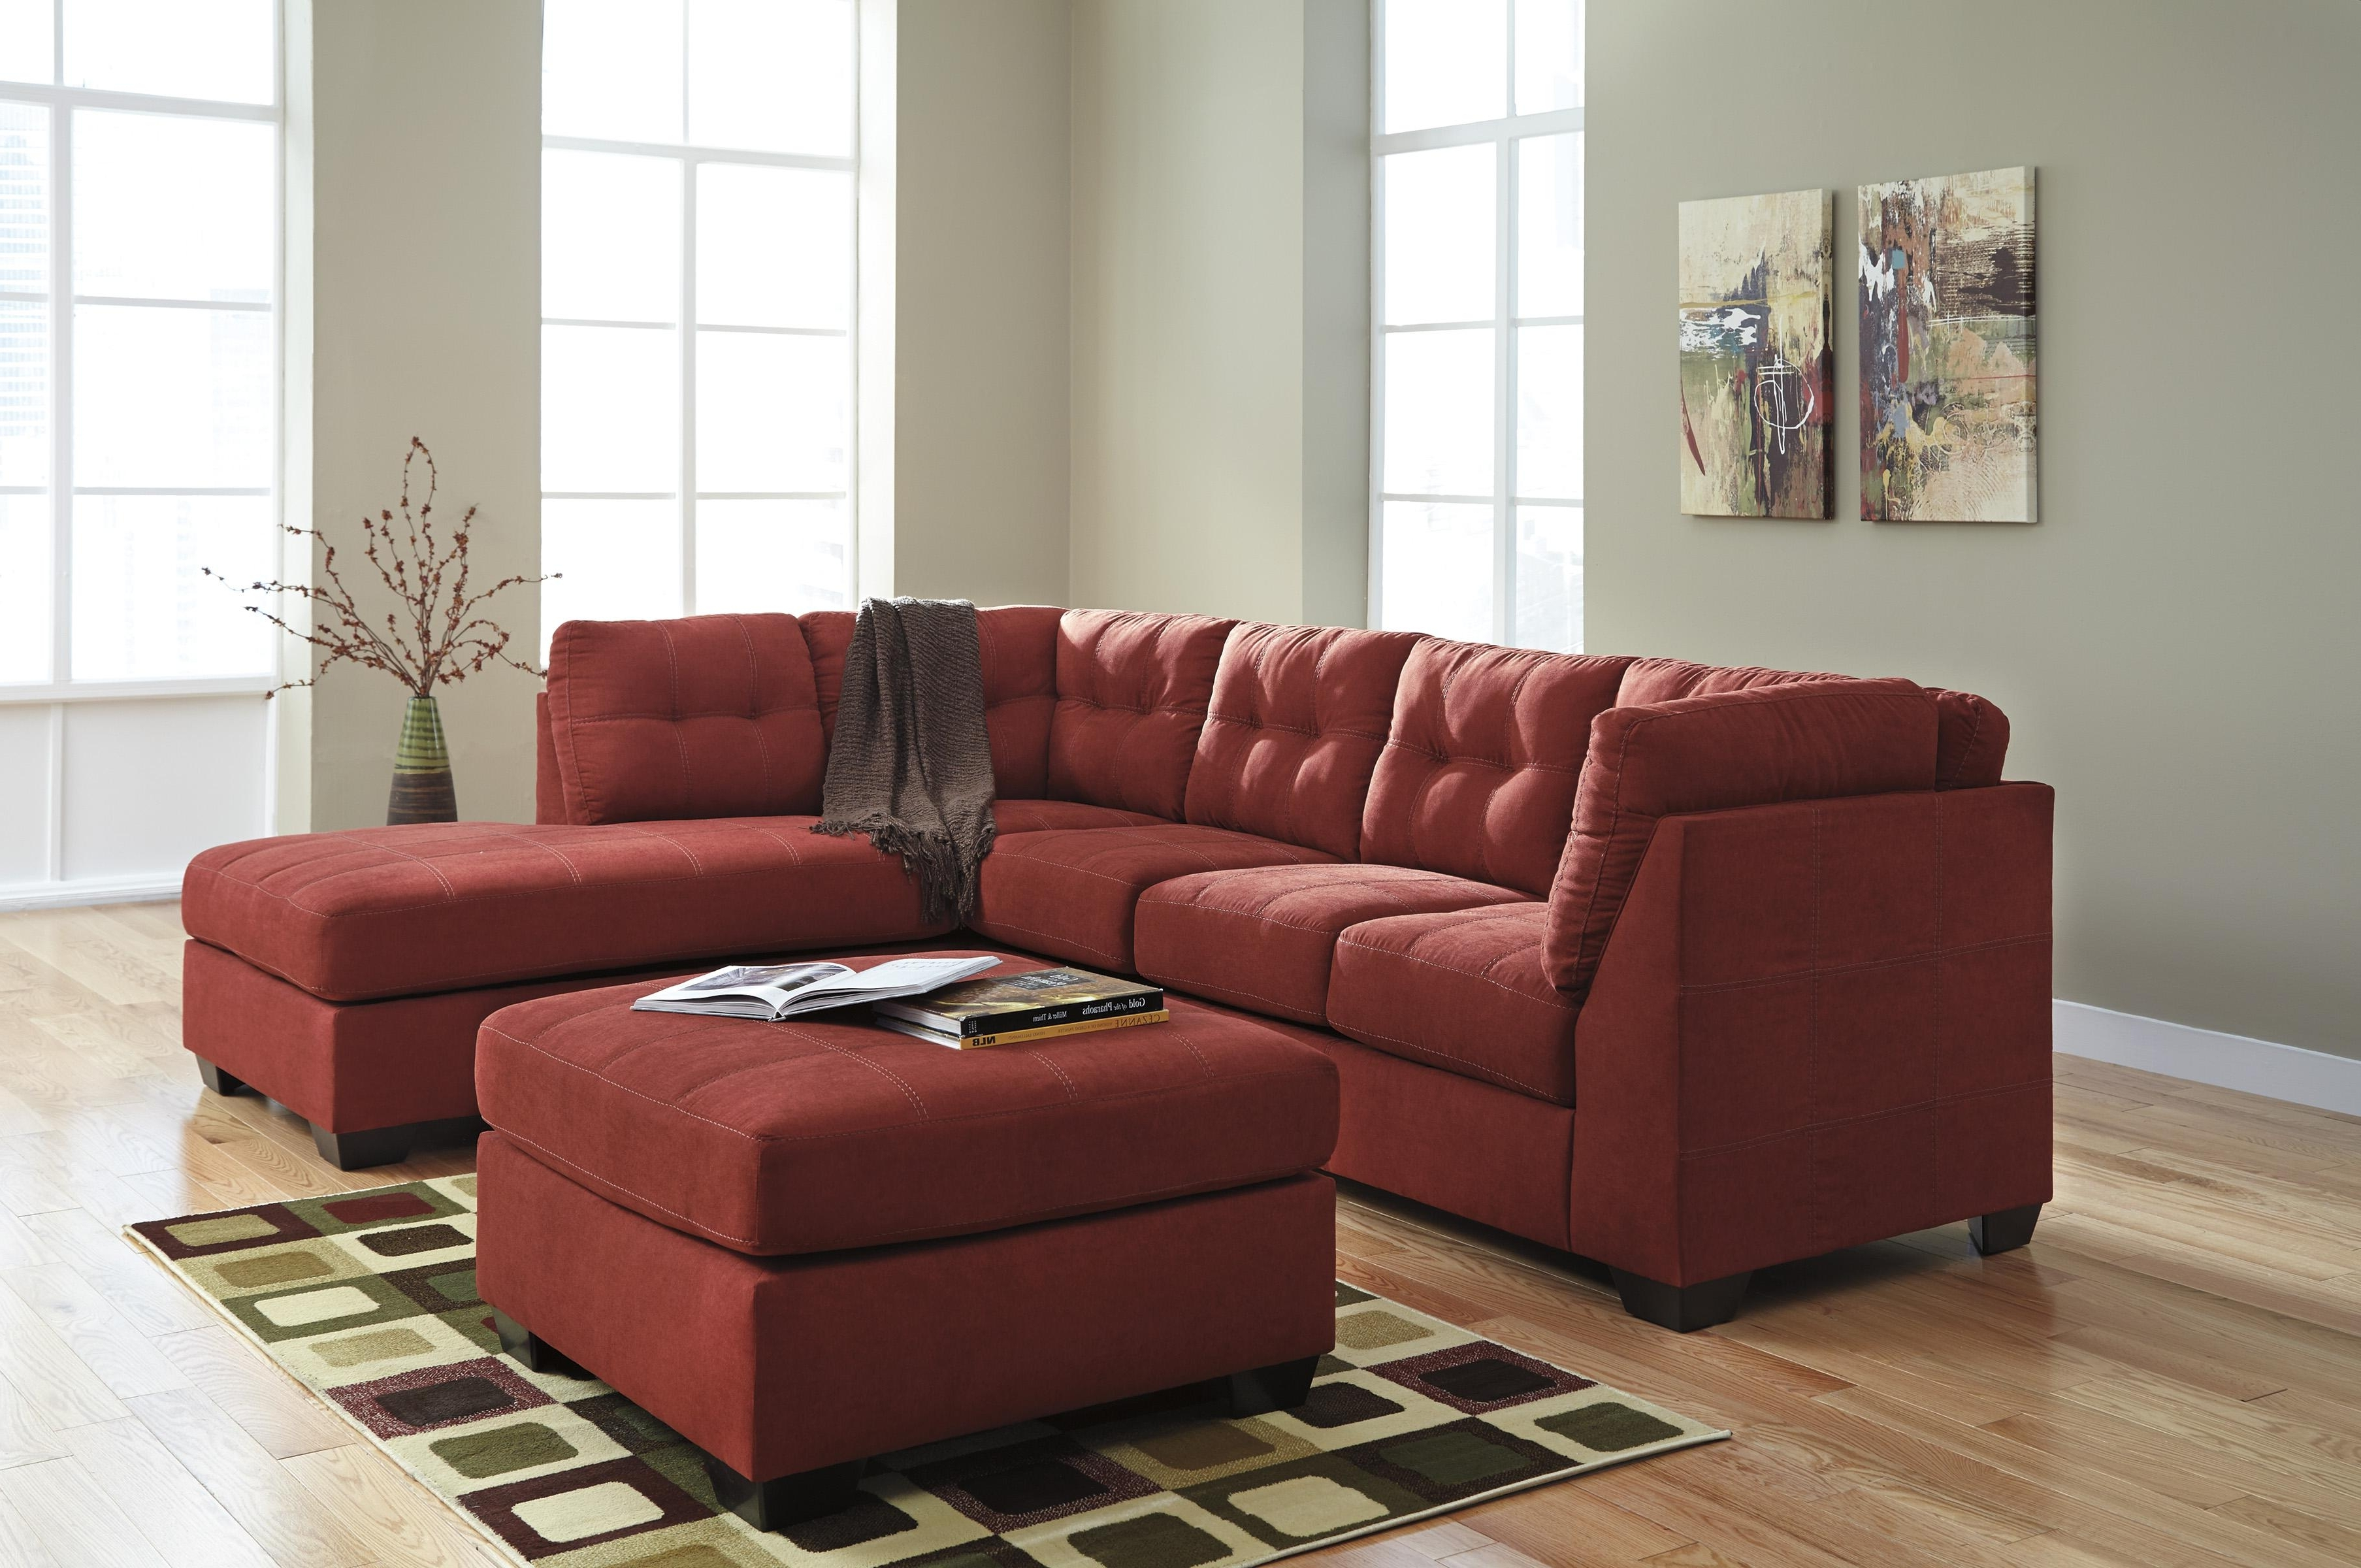 2018 Furniture : 5060 Recliner Sectional Sofa Costco $699 Corner Couch Intended For Nz Sectional Sofas (View 1 of 20)